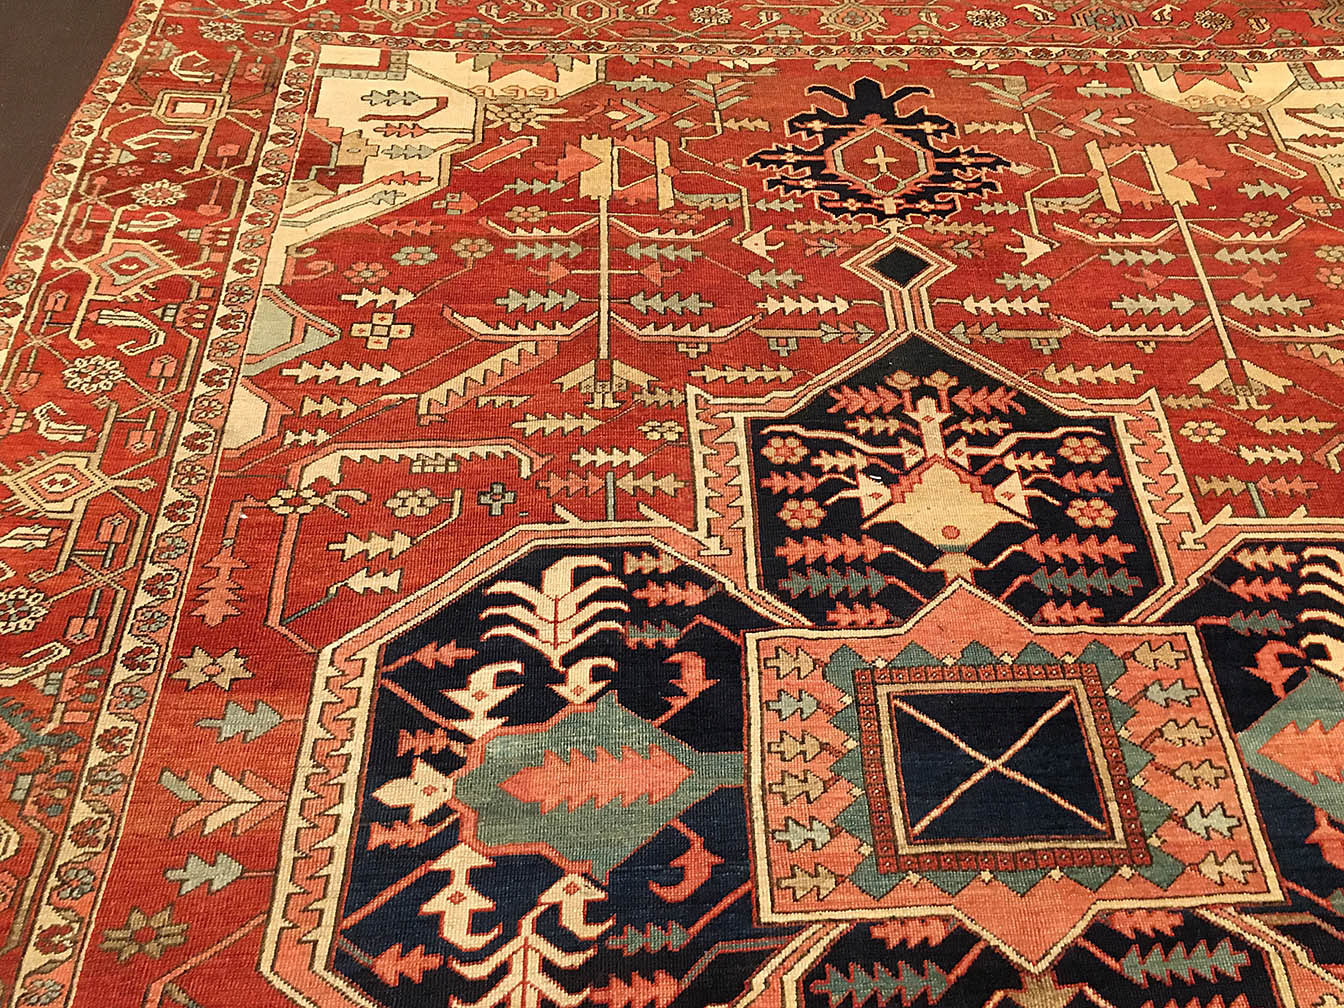 Antique heriz Carpet - # 53604